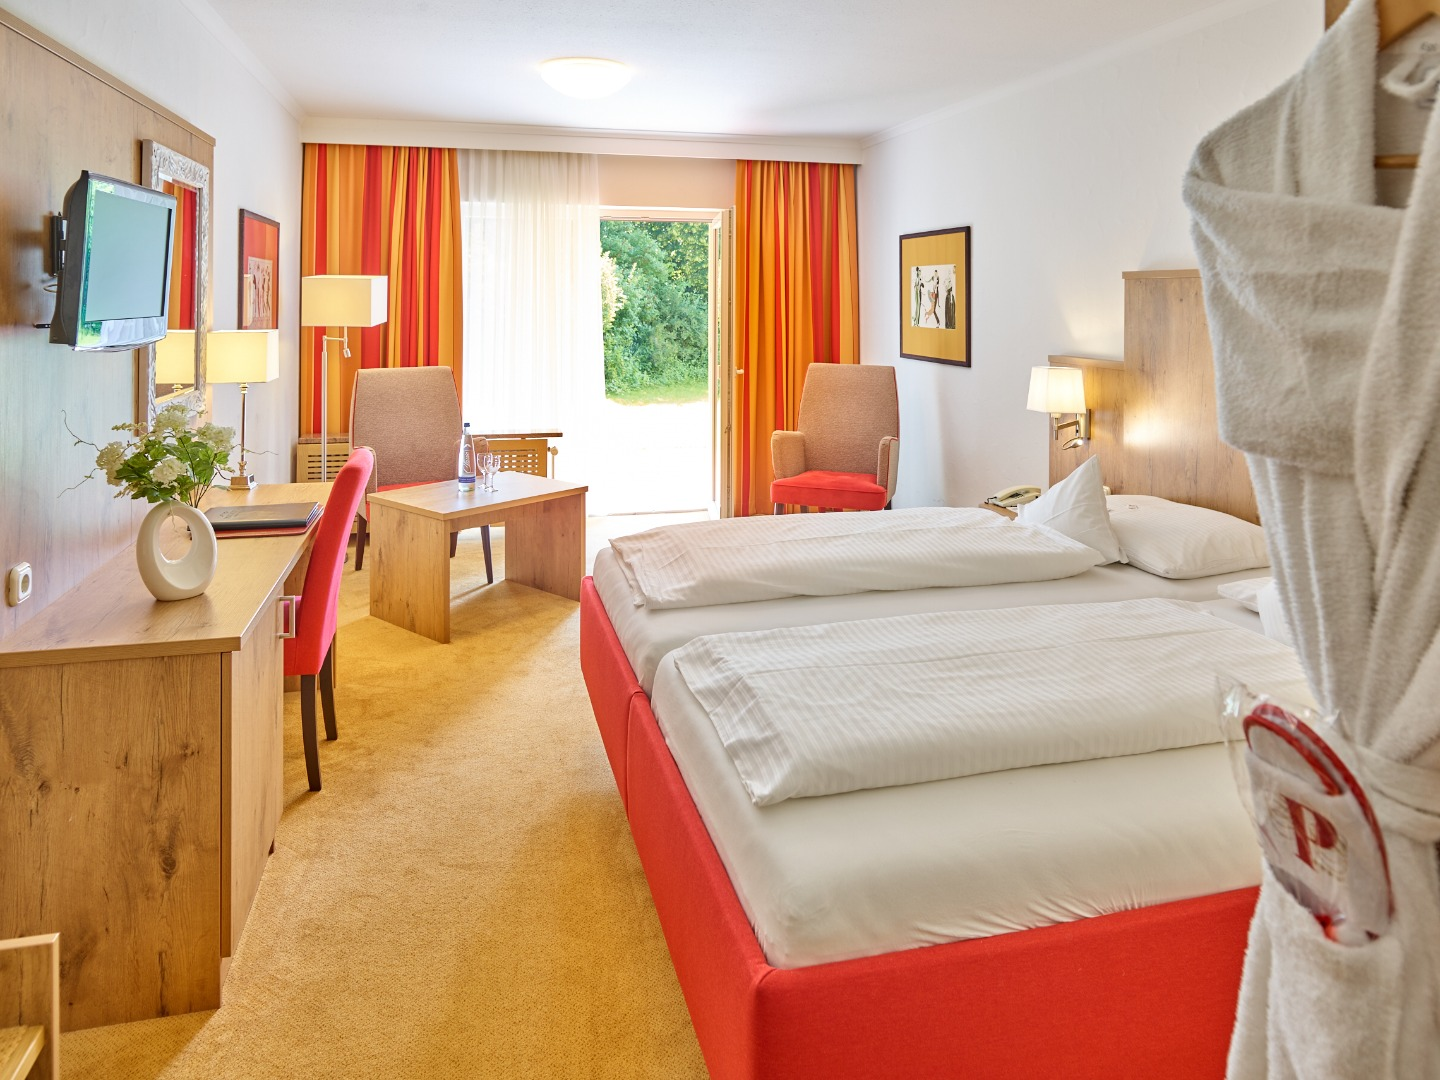 Parkhotel Bad Griesbach » Bad Griesbach » Hotelbewertung